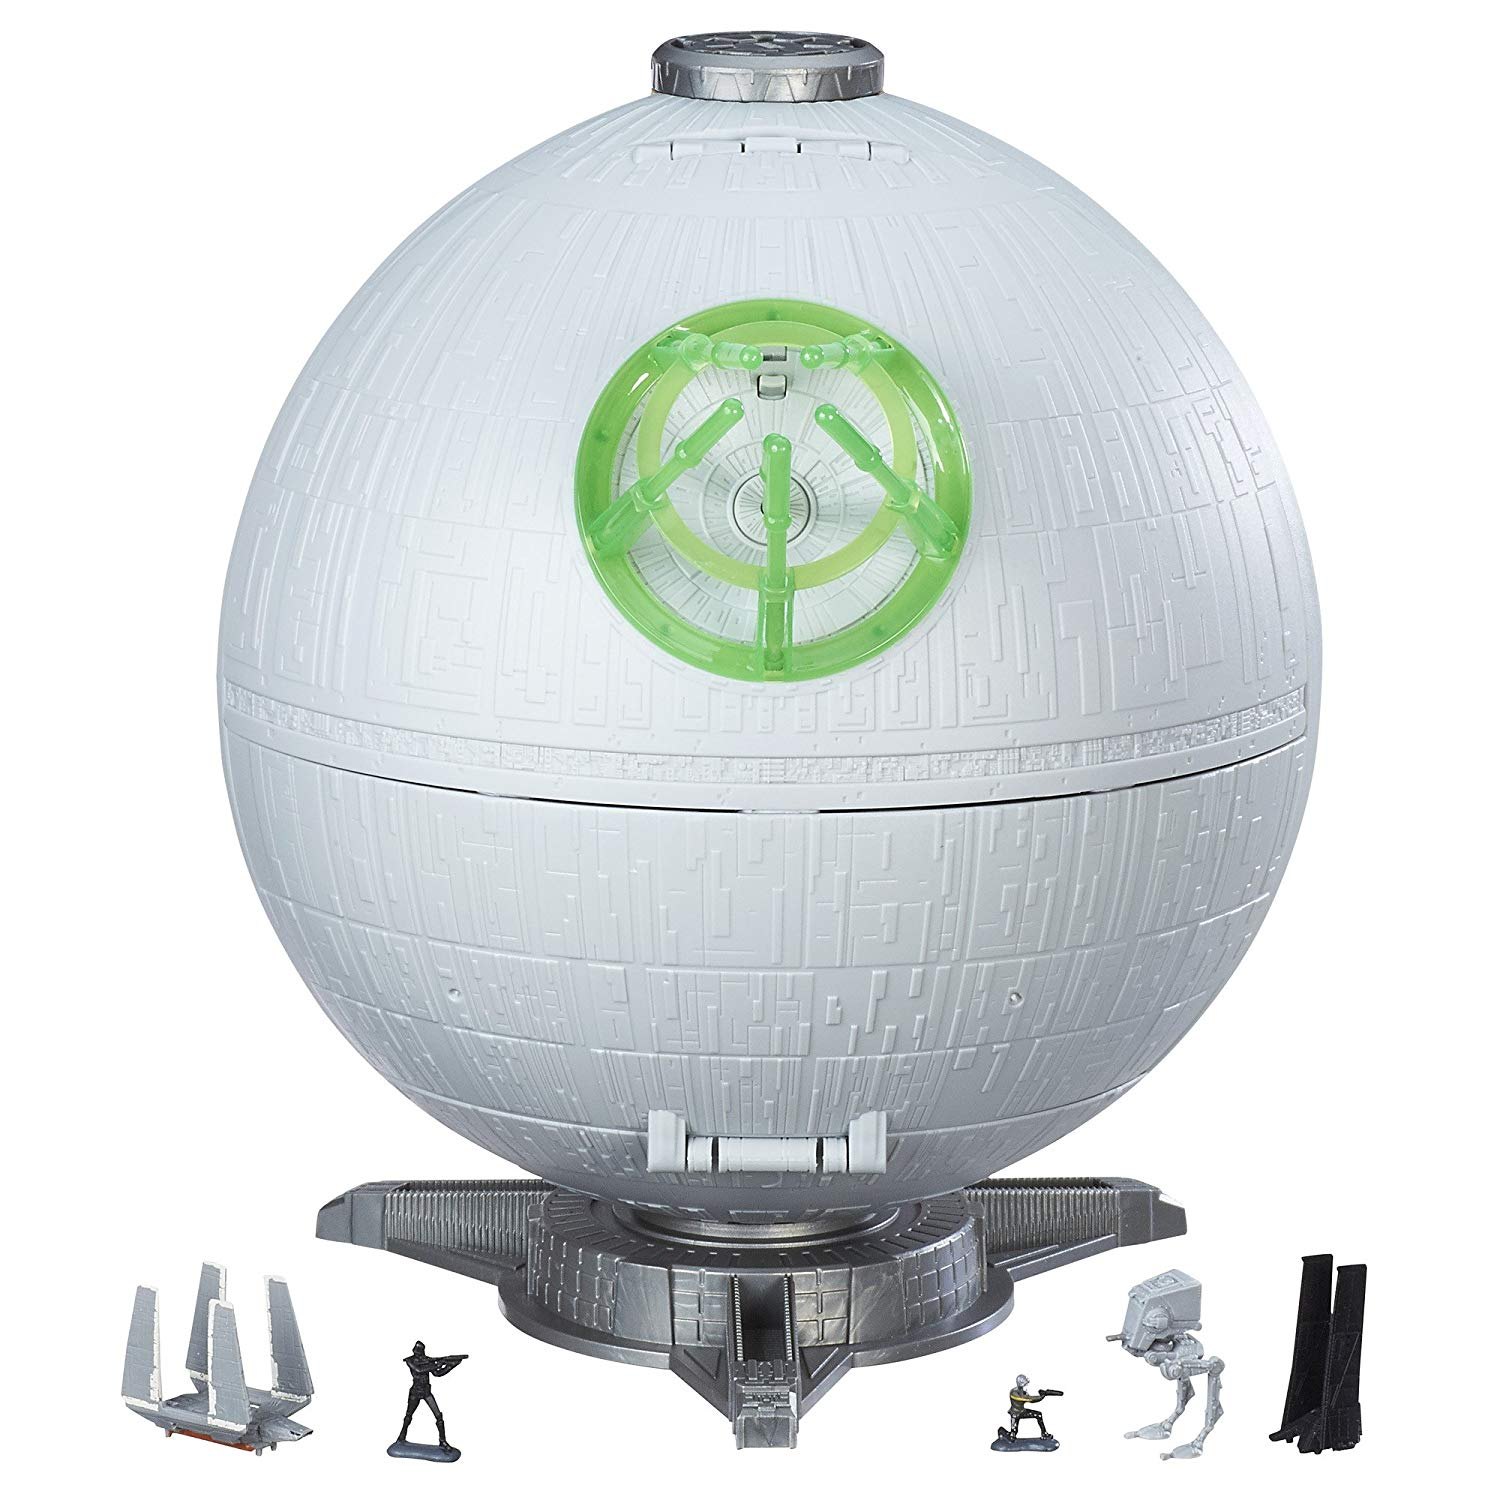 Steve Blum recommends Rogue One Deathstar Playset